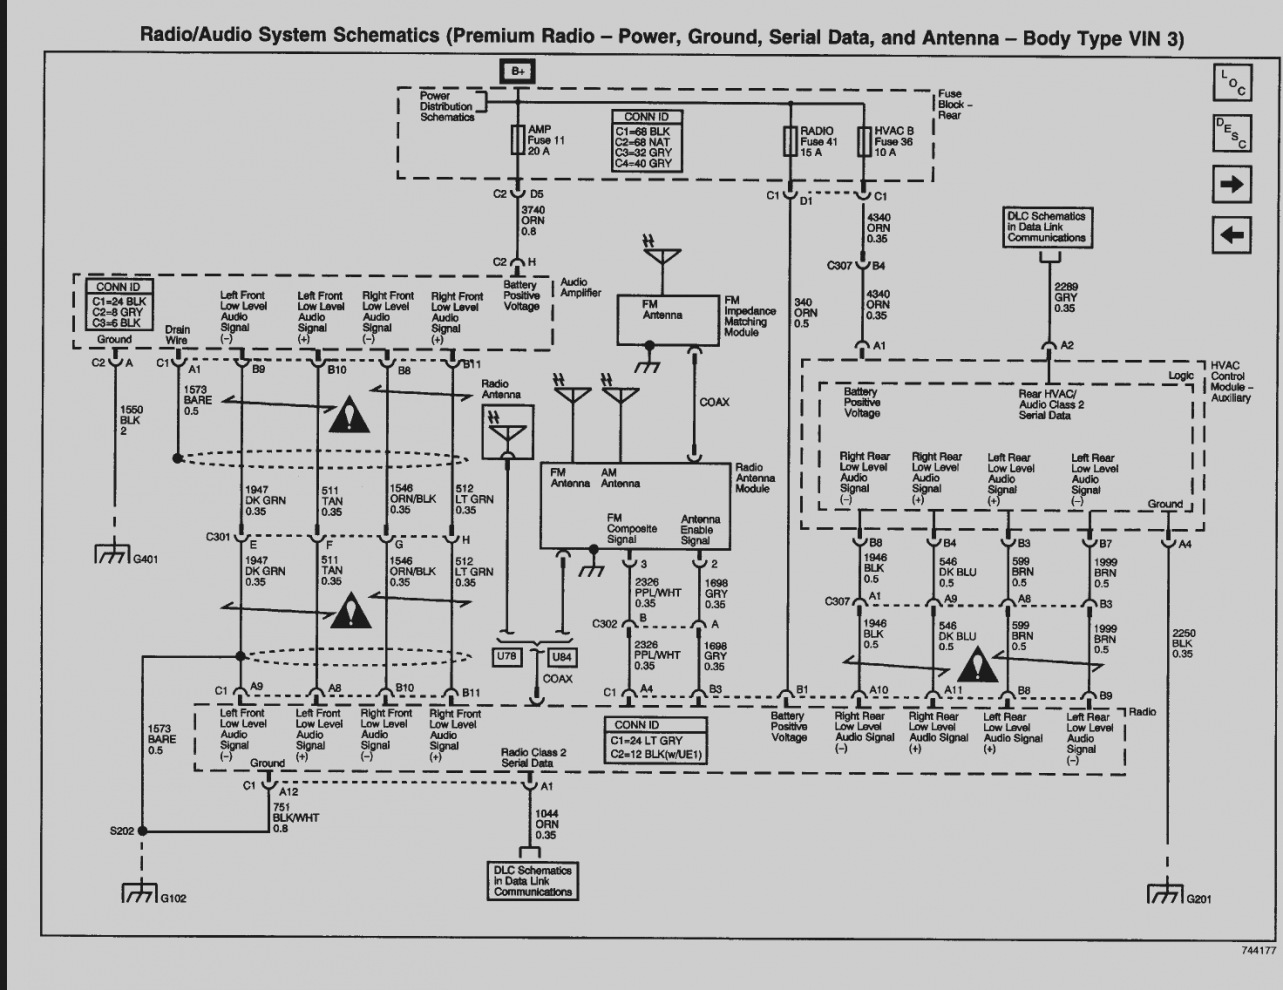 free radio wiring diagram 1996 gmc 2003 gmc yukon bose radio wiring diagram | free wiring diagram